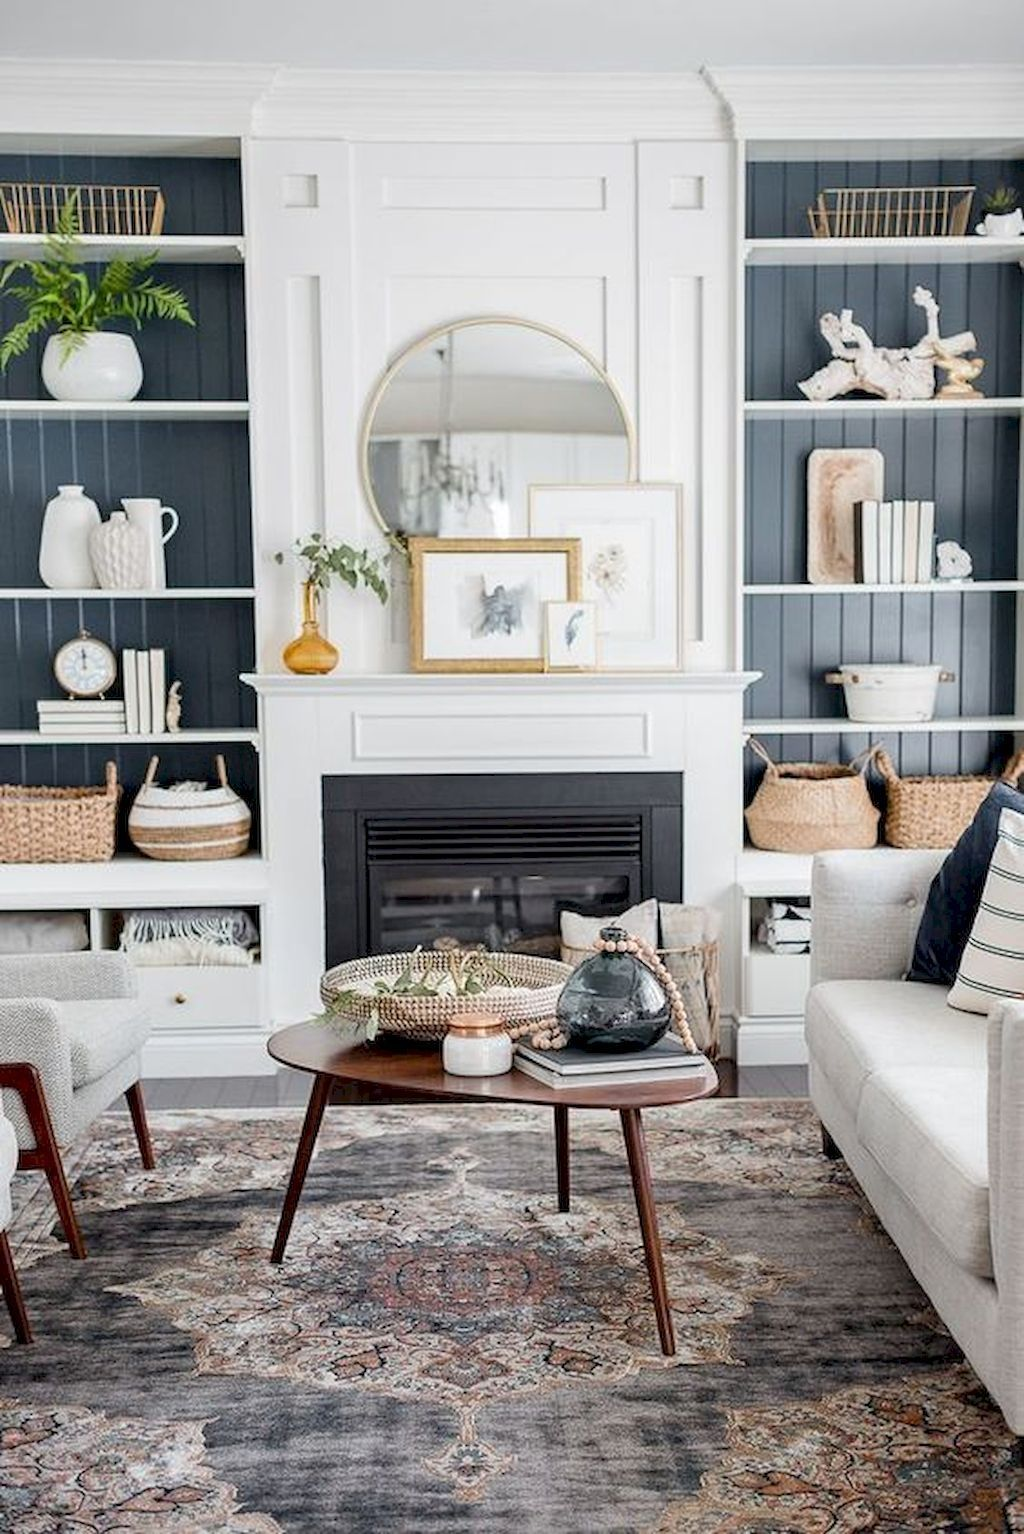 49 GORGEOUS SUMMER LIVING ROOM DECORATING IDEAS FALL